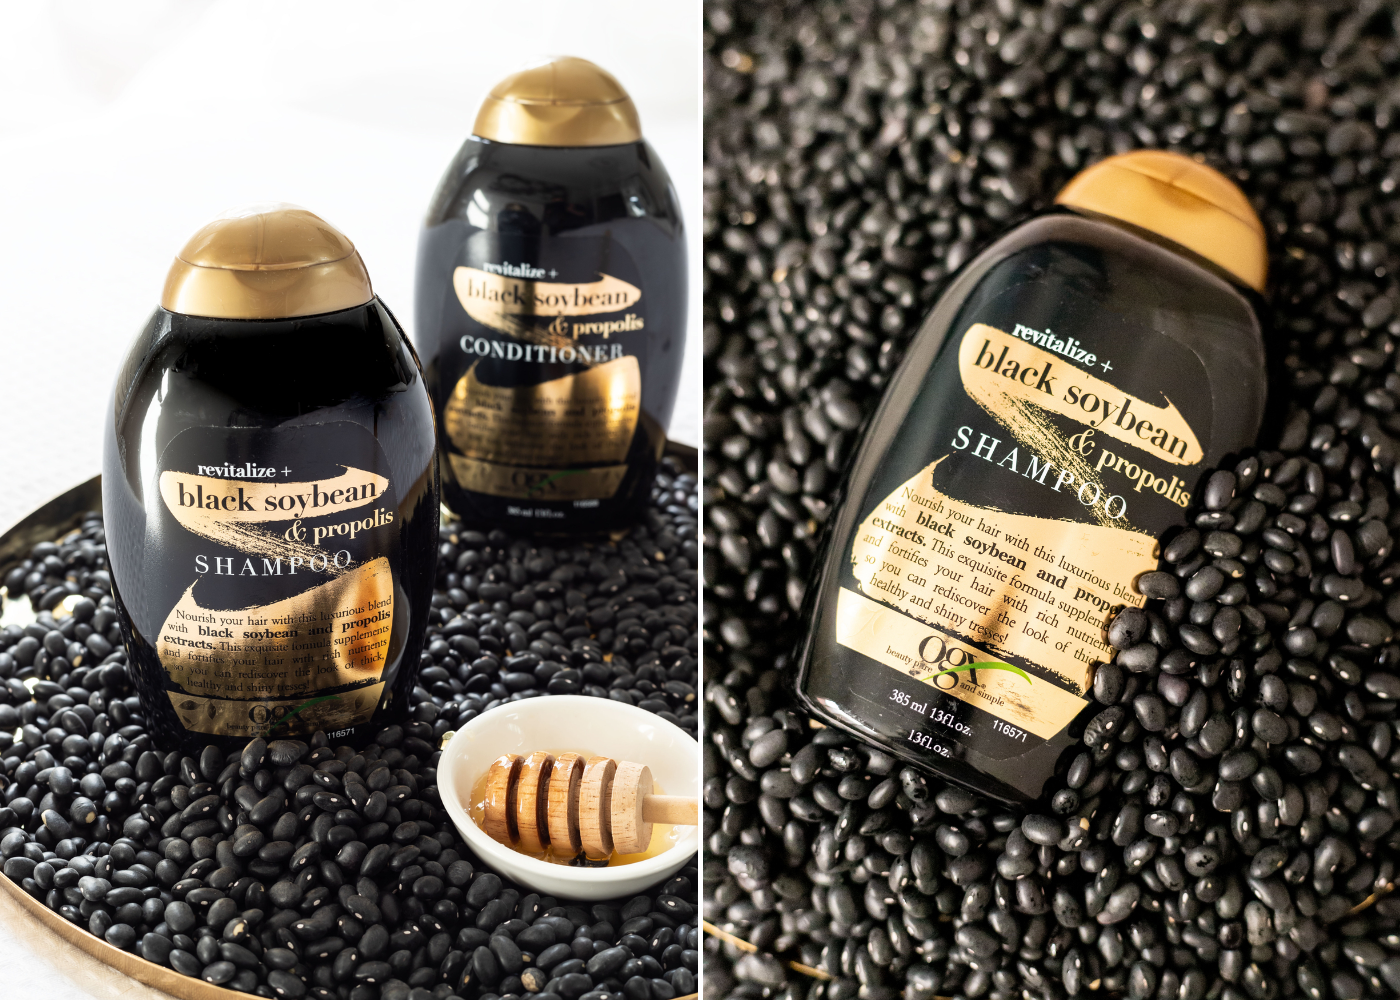 The OGX Revitalize+ Black Soybean & Propolis shampoo and conditioner. Photography: OGX